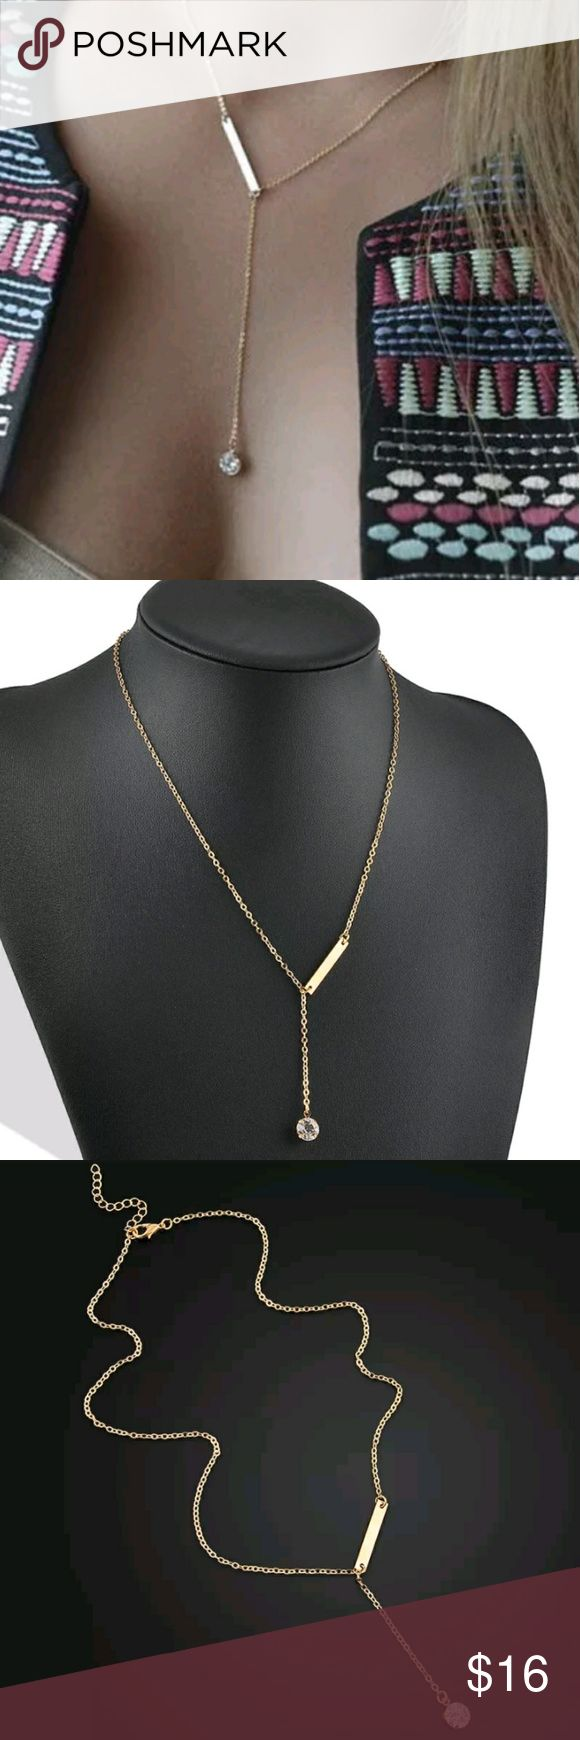 Gold Layered Rhinestone Bar Necklace Very pretty dainty long gold necklace with charms. Bar and circle jewel.  On trend and super classy.  Brand new and perfect!     Tags bohemian boho hippy dainty girly choker necklaces stacking charms charm coin coins bar minimalist layered layers Jewelry Necklaces